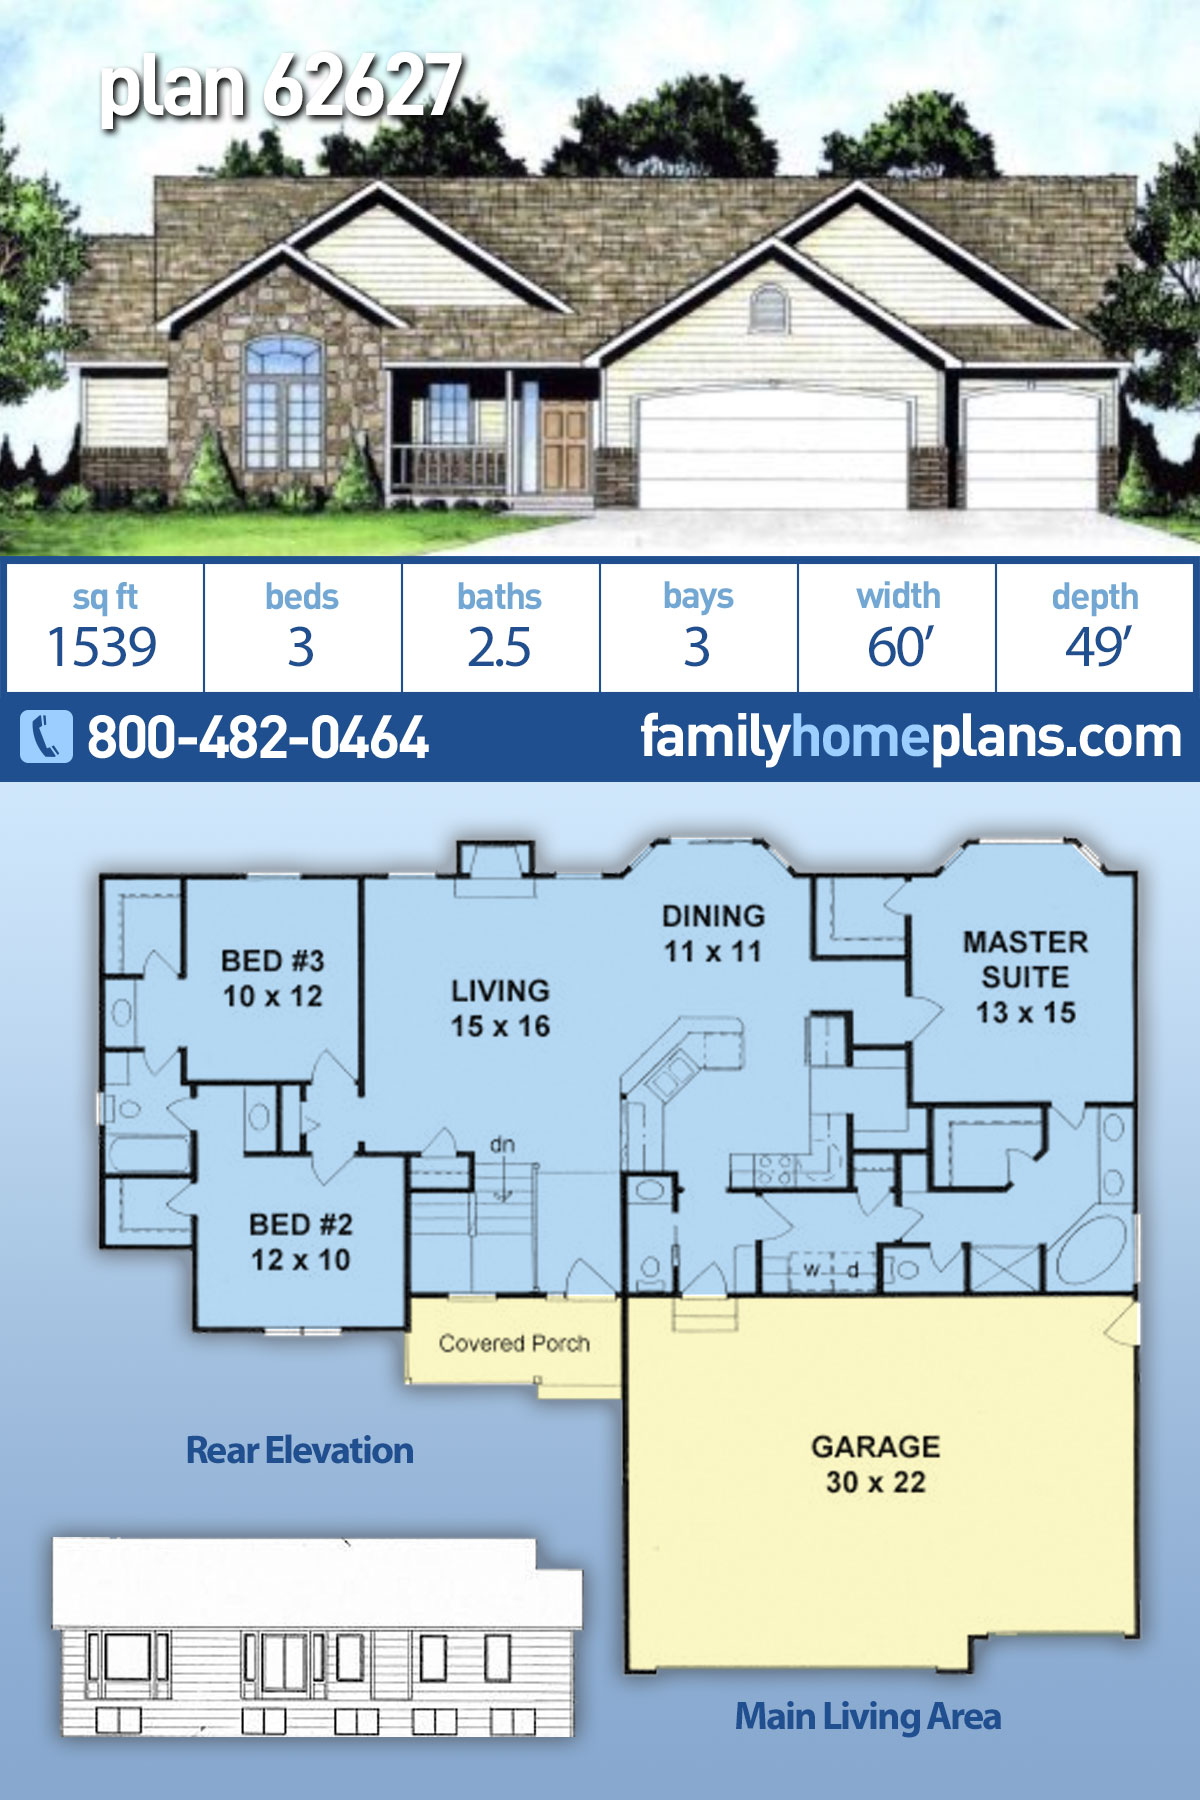 Ranch, Traditional House Plan 62627 with 3 Beds, 3 Baths, 3 Car Garage